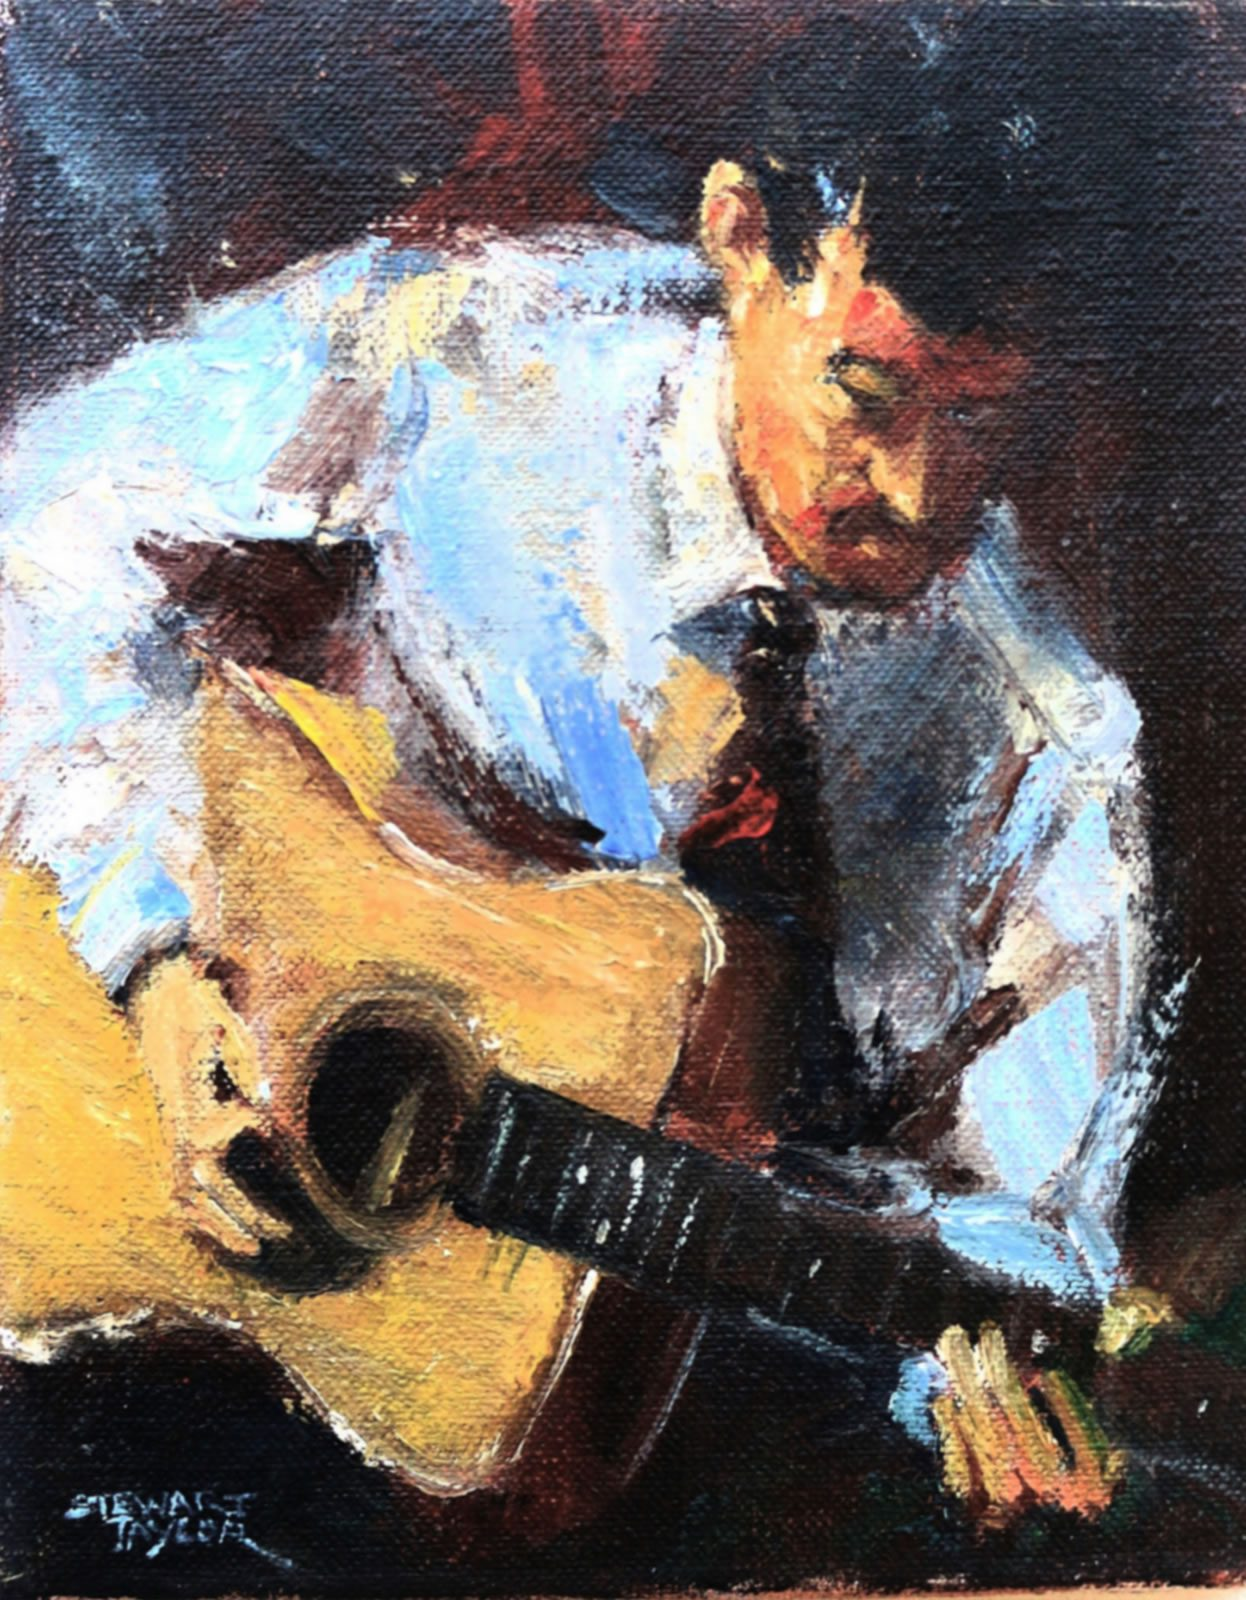 Oil painting character study of musician playing guitar